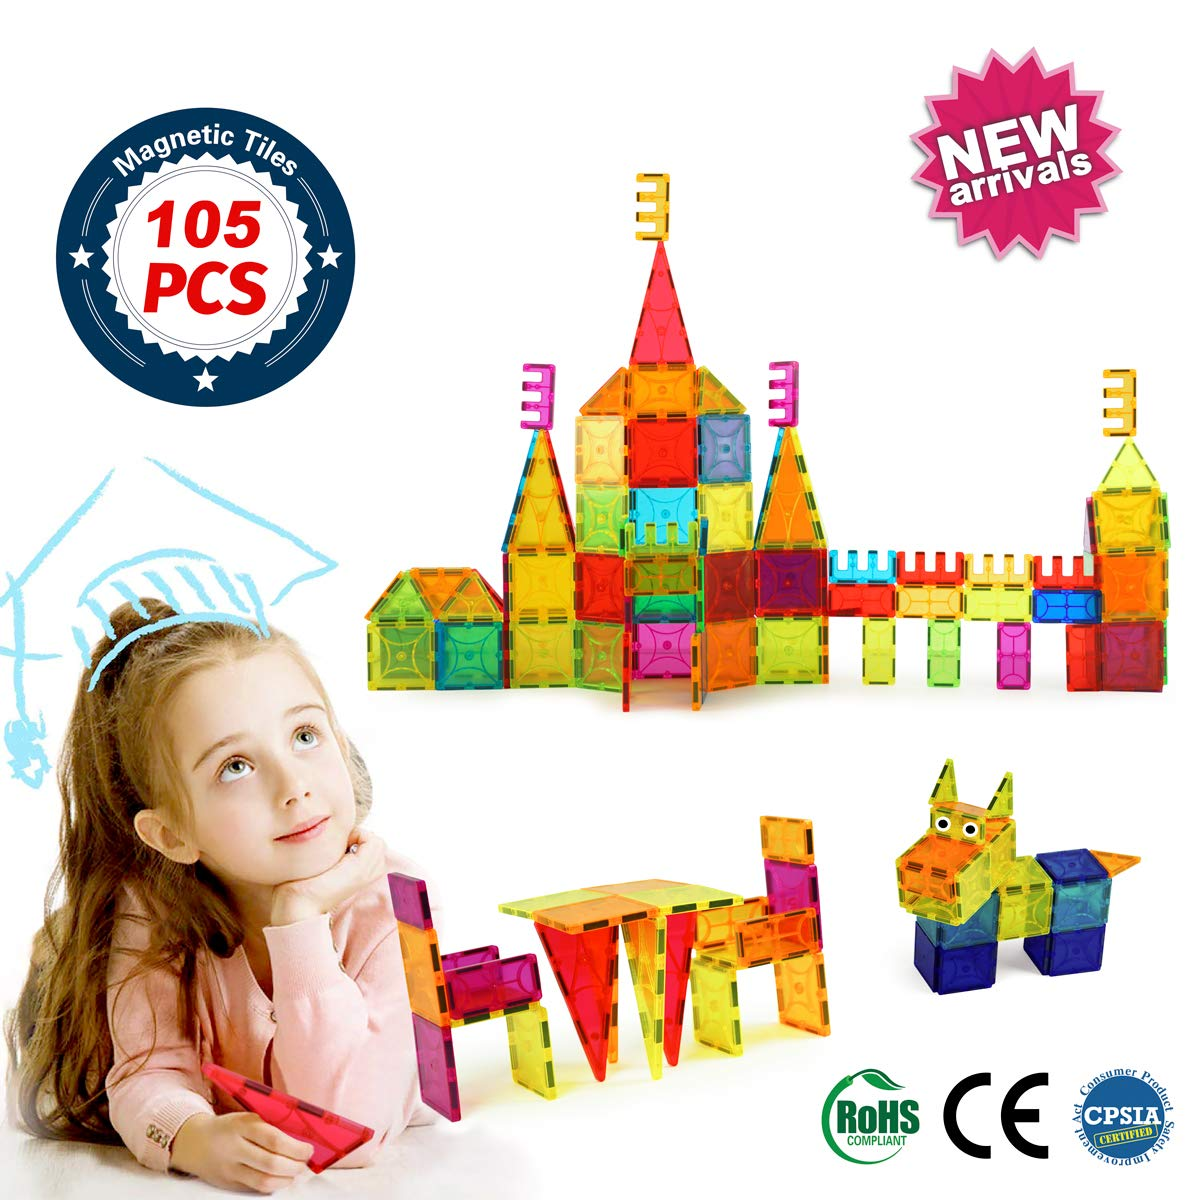 BrightOn Educational Kids Toys Magnetic Building Blocks, Creative Toys 3D Magnetic Blocks for Kids, Imagination Magnets Building Tiles for Children 105Pcs by BrightOn